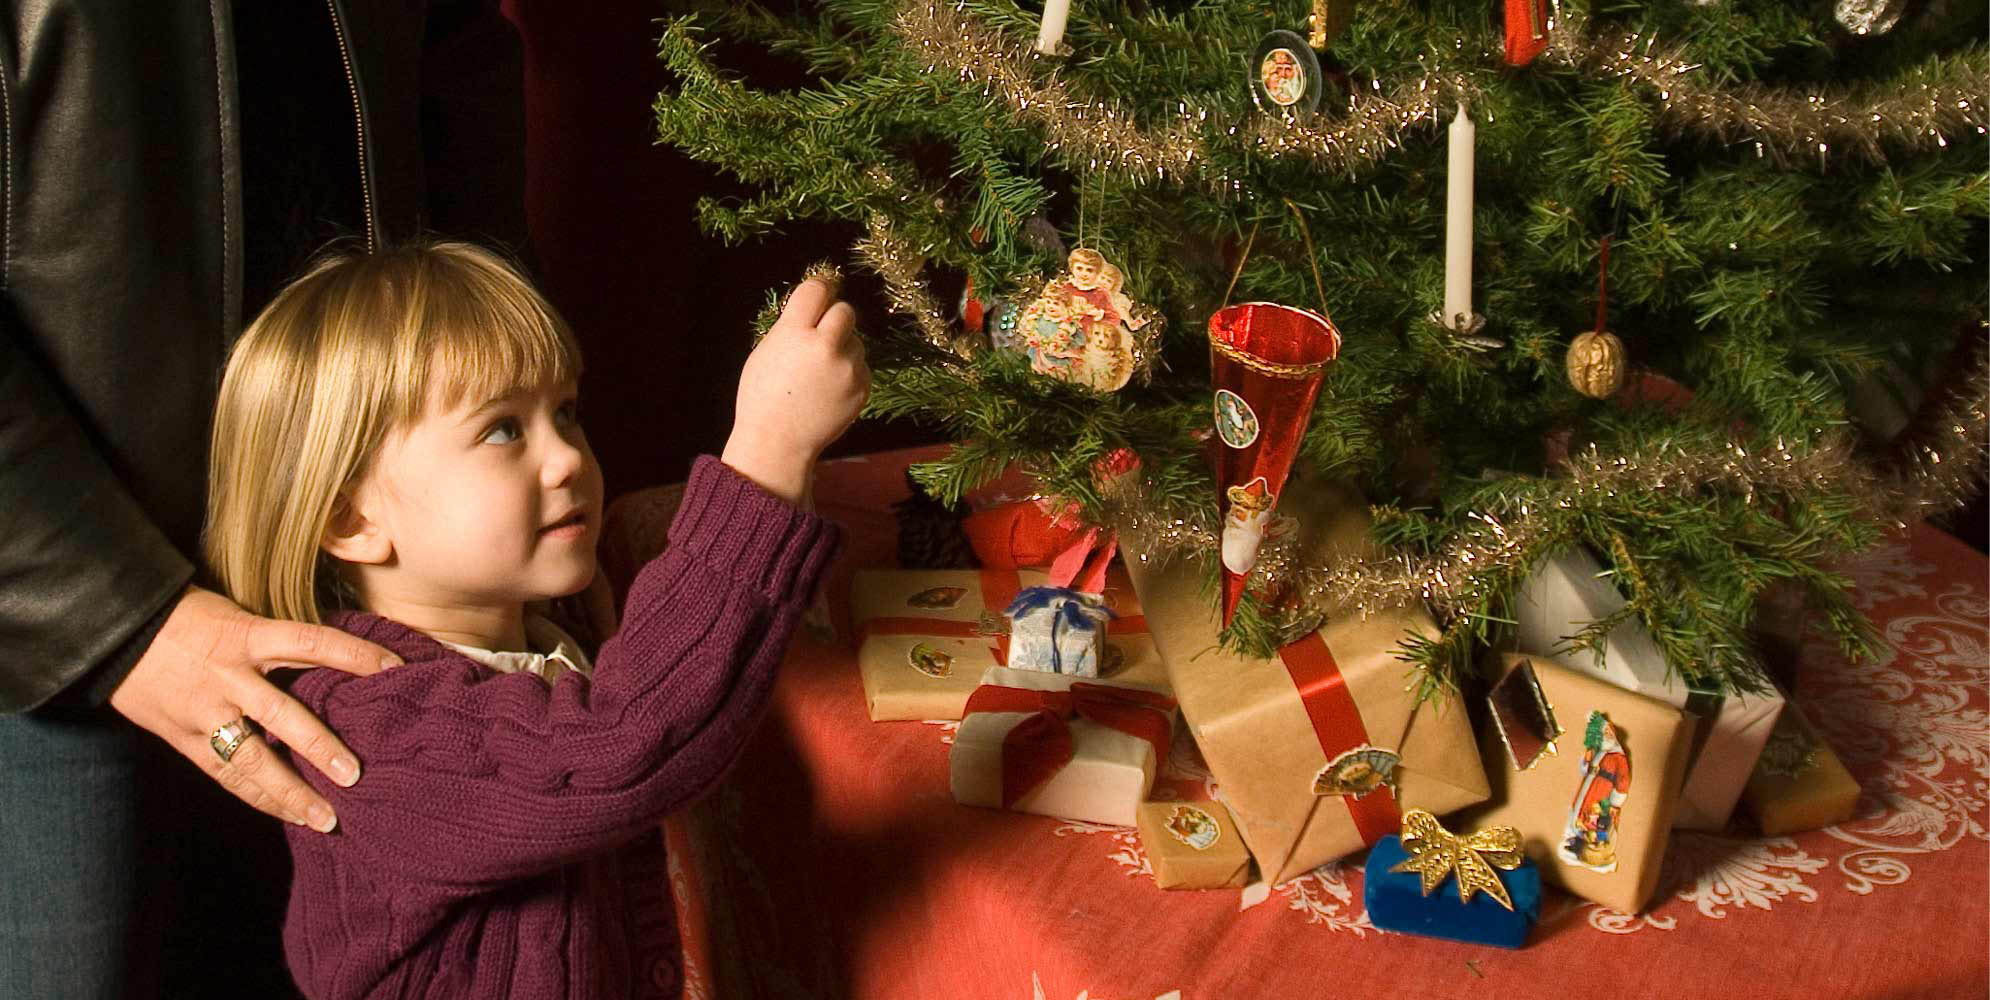 Girl hanging an ornament on a Christmas tree